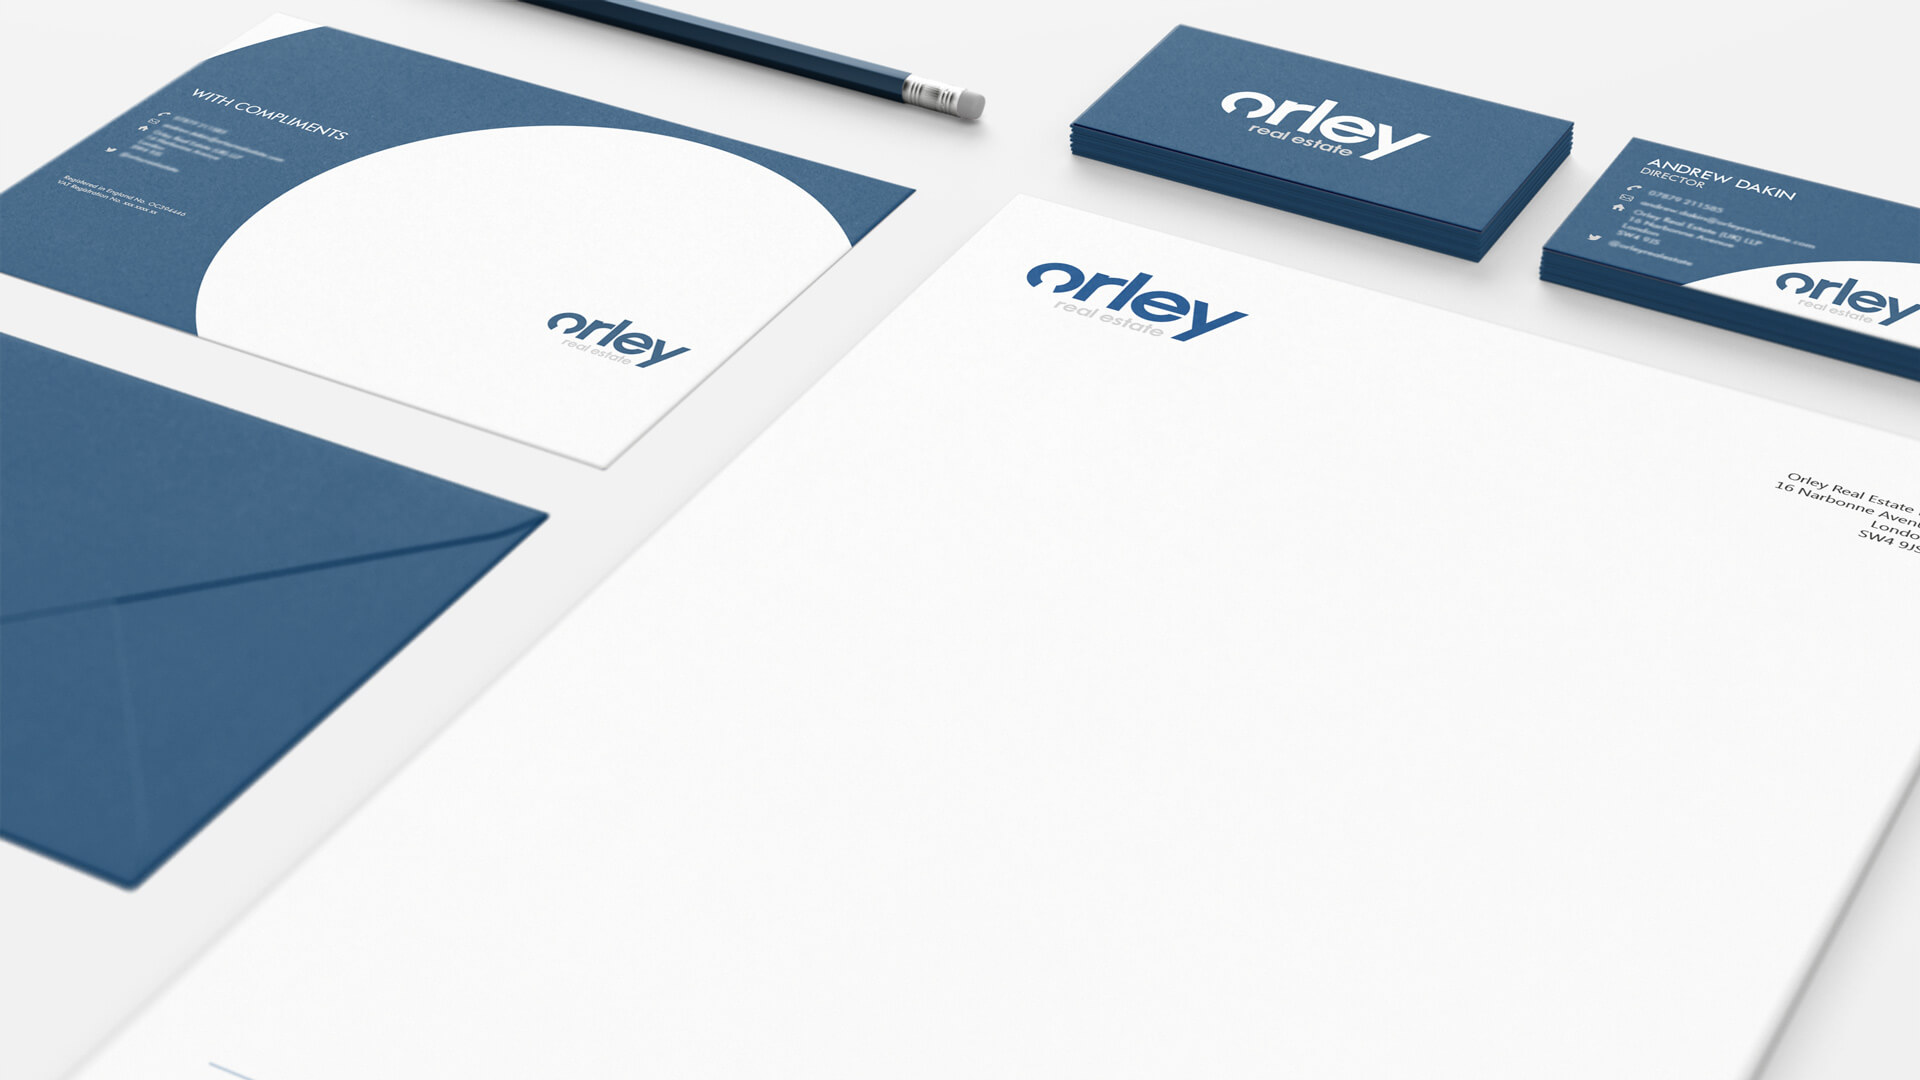 Orley Real Estate Stationery